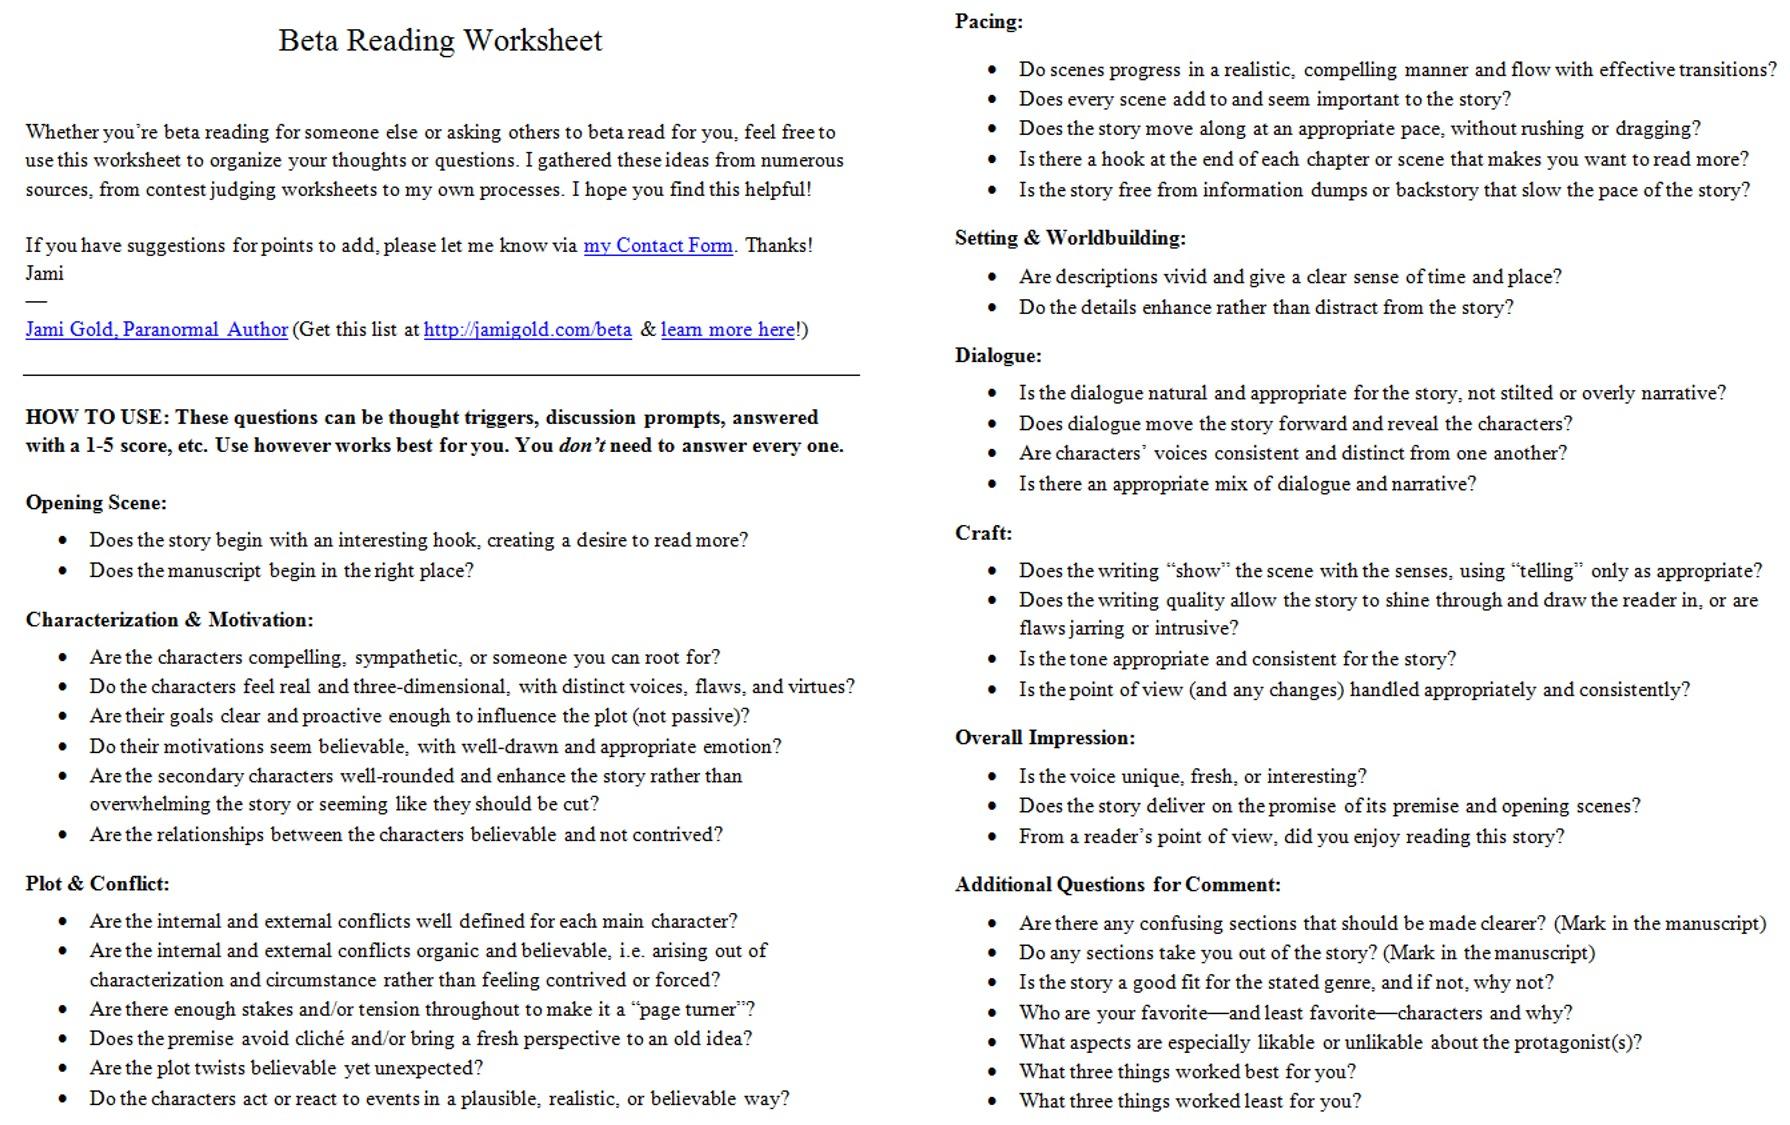 Weirdmailus  Ravishing Worksheets For Writers  Jami Gold Paranormal Author With Gorgeous Screen Shot Of The Twopage Beta Reading Worksheet With Lovely Frugal Budget Worksheet Also Worksheets On Rocks And Minerals In Addition Herbivores Omnivores Carnivores Worksheets And Greenhouse Effect Worksheets As Well As Long And Short Worksheets For Kindergarten Additionally Worksheets For Days Of The Week From Jamigoldcom With Weirdmailus  Gorgeous Worksheets For Writers  Jami Gold Paranormal Author With Lovely Screen Shot Of The Twopage Beta Reading Worksheet And Ravishing Frugal Budget Worksheet Also Worksheets On Rocks And Minerals In Addition Herbivores Omnivores Carnivores Worksheets From Jamigoldcom